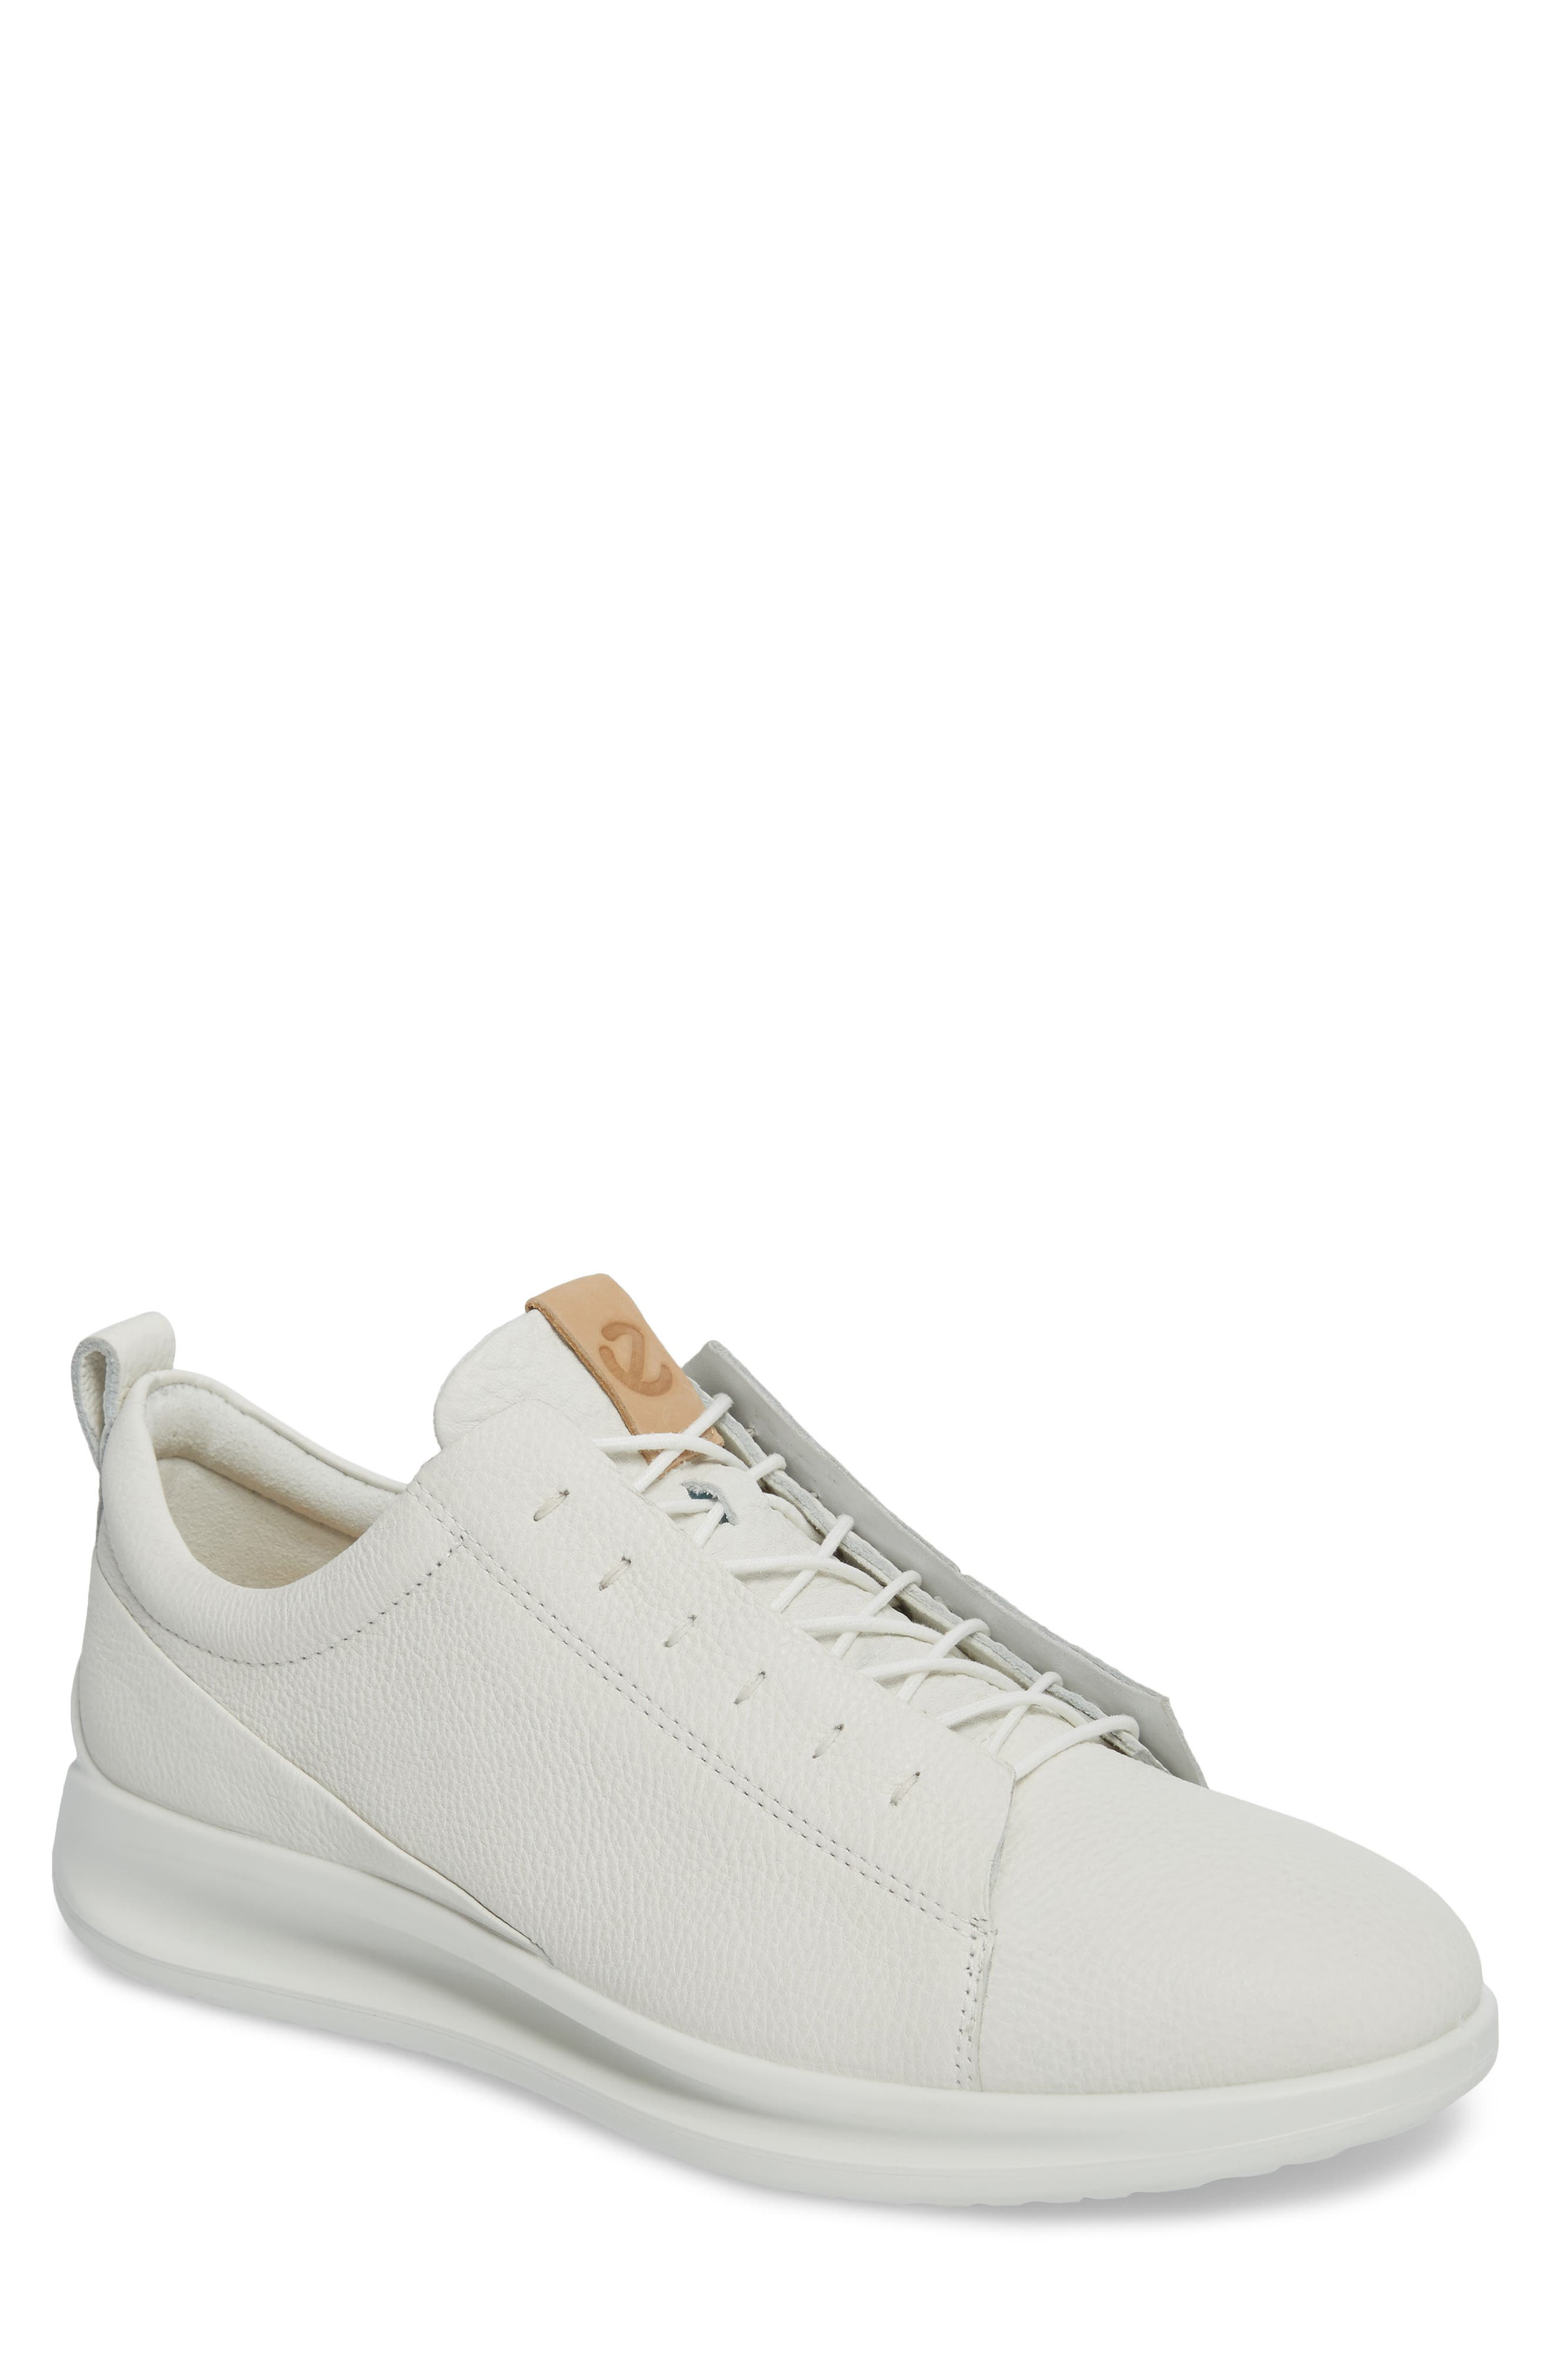 Aquet Low Top Sneaker,                             Main thumbnail 1, color,                             100